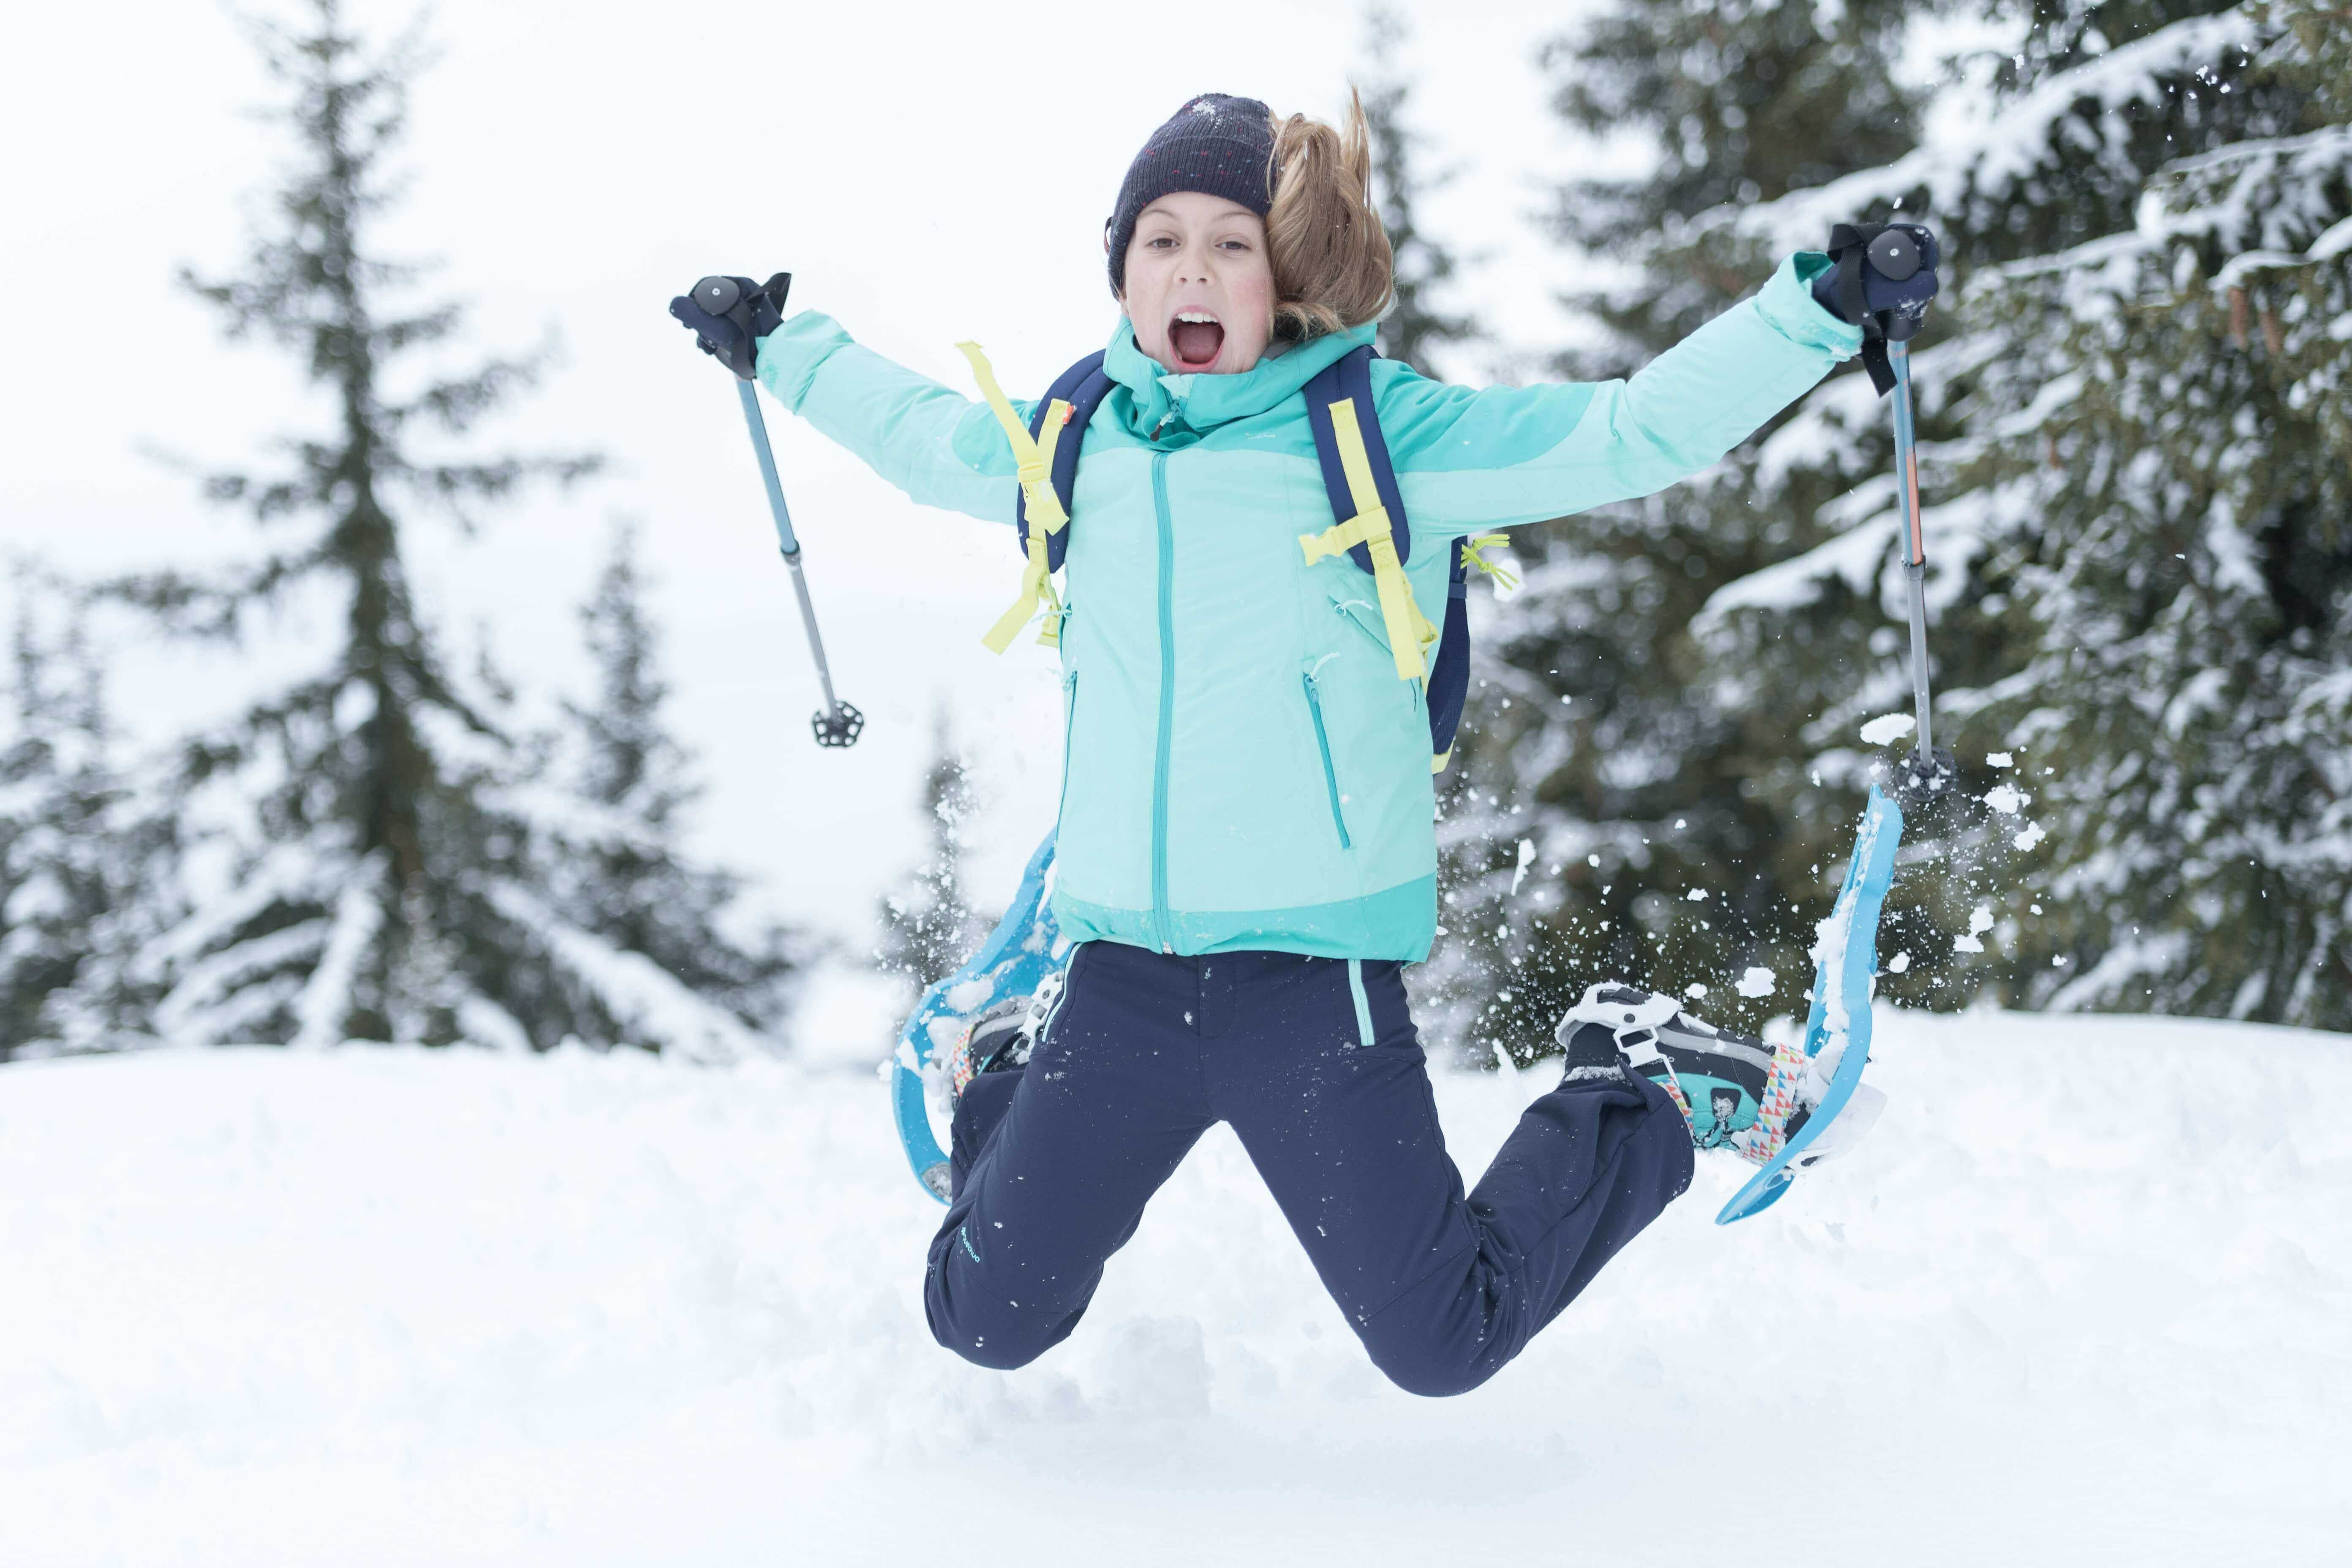 Winter Hiking: The Benefits Of Hiking On Snow